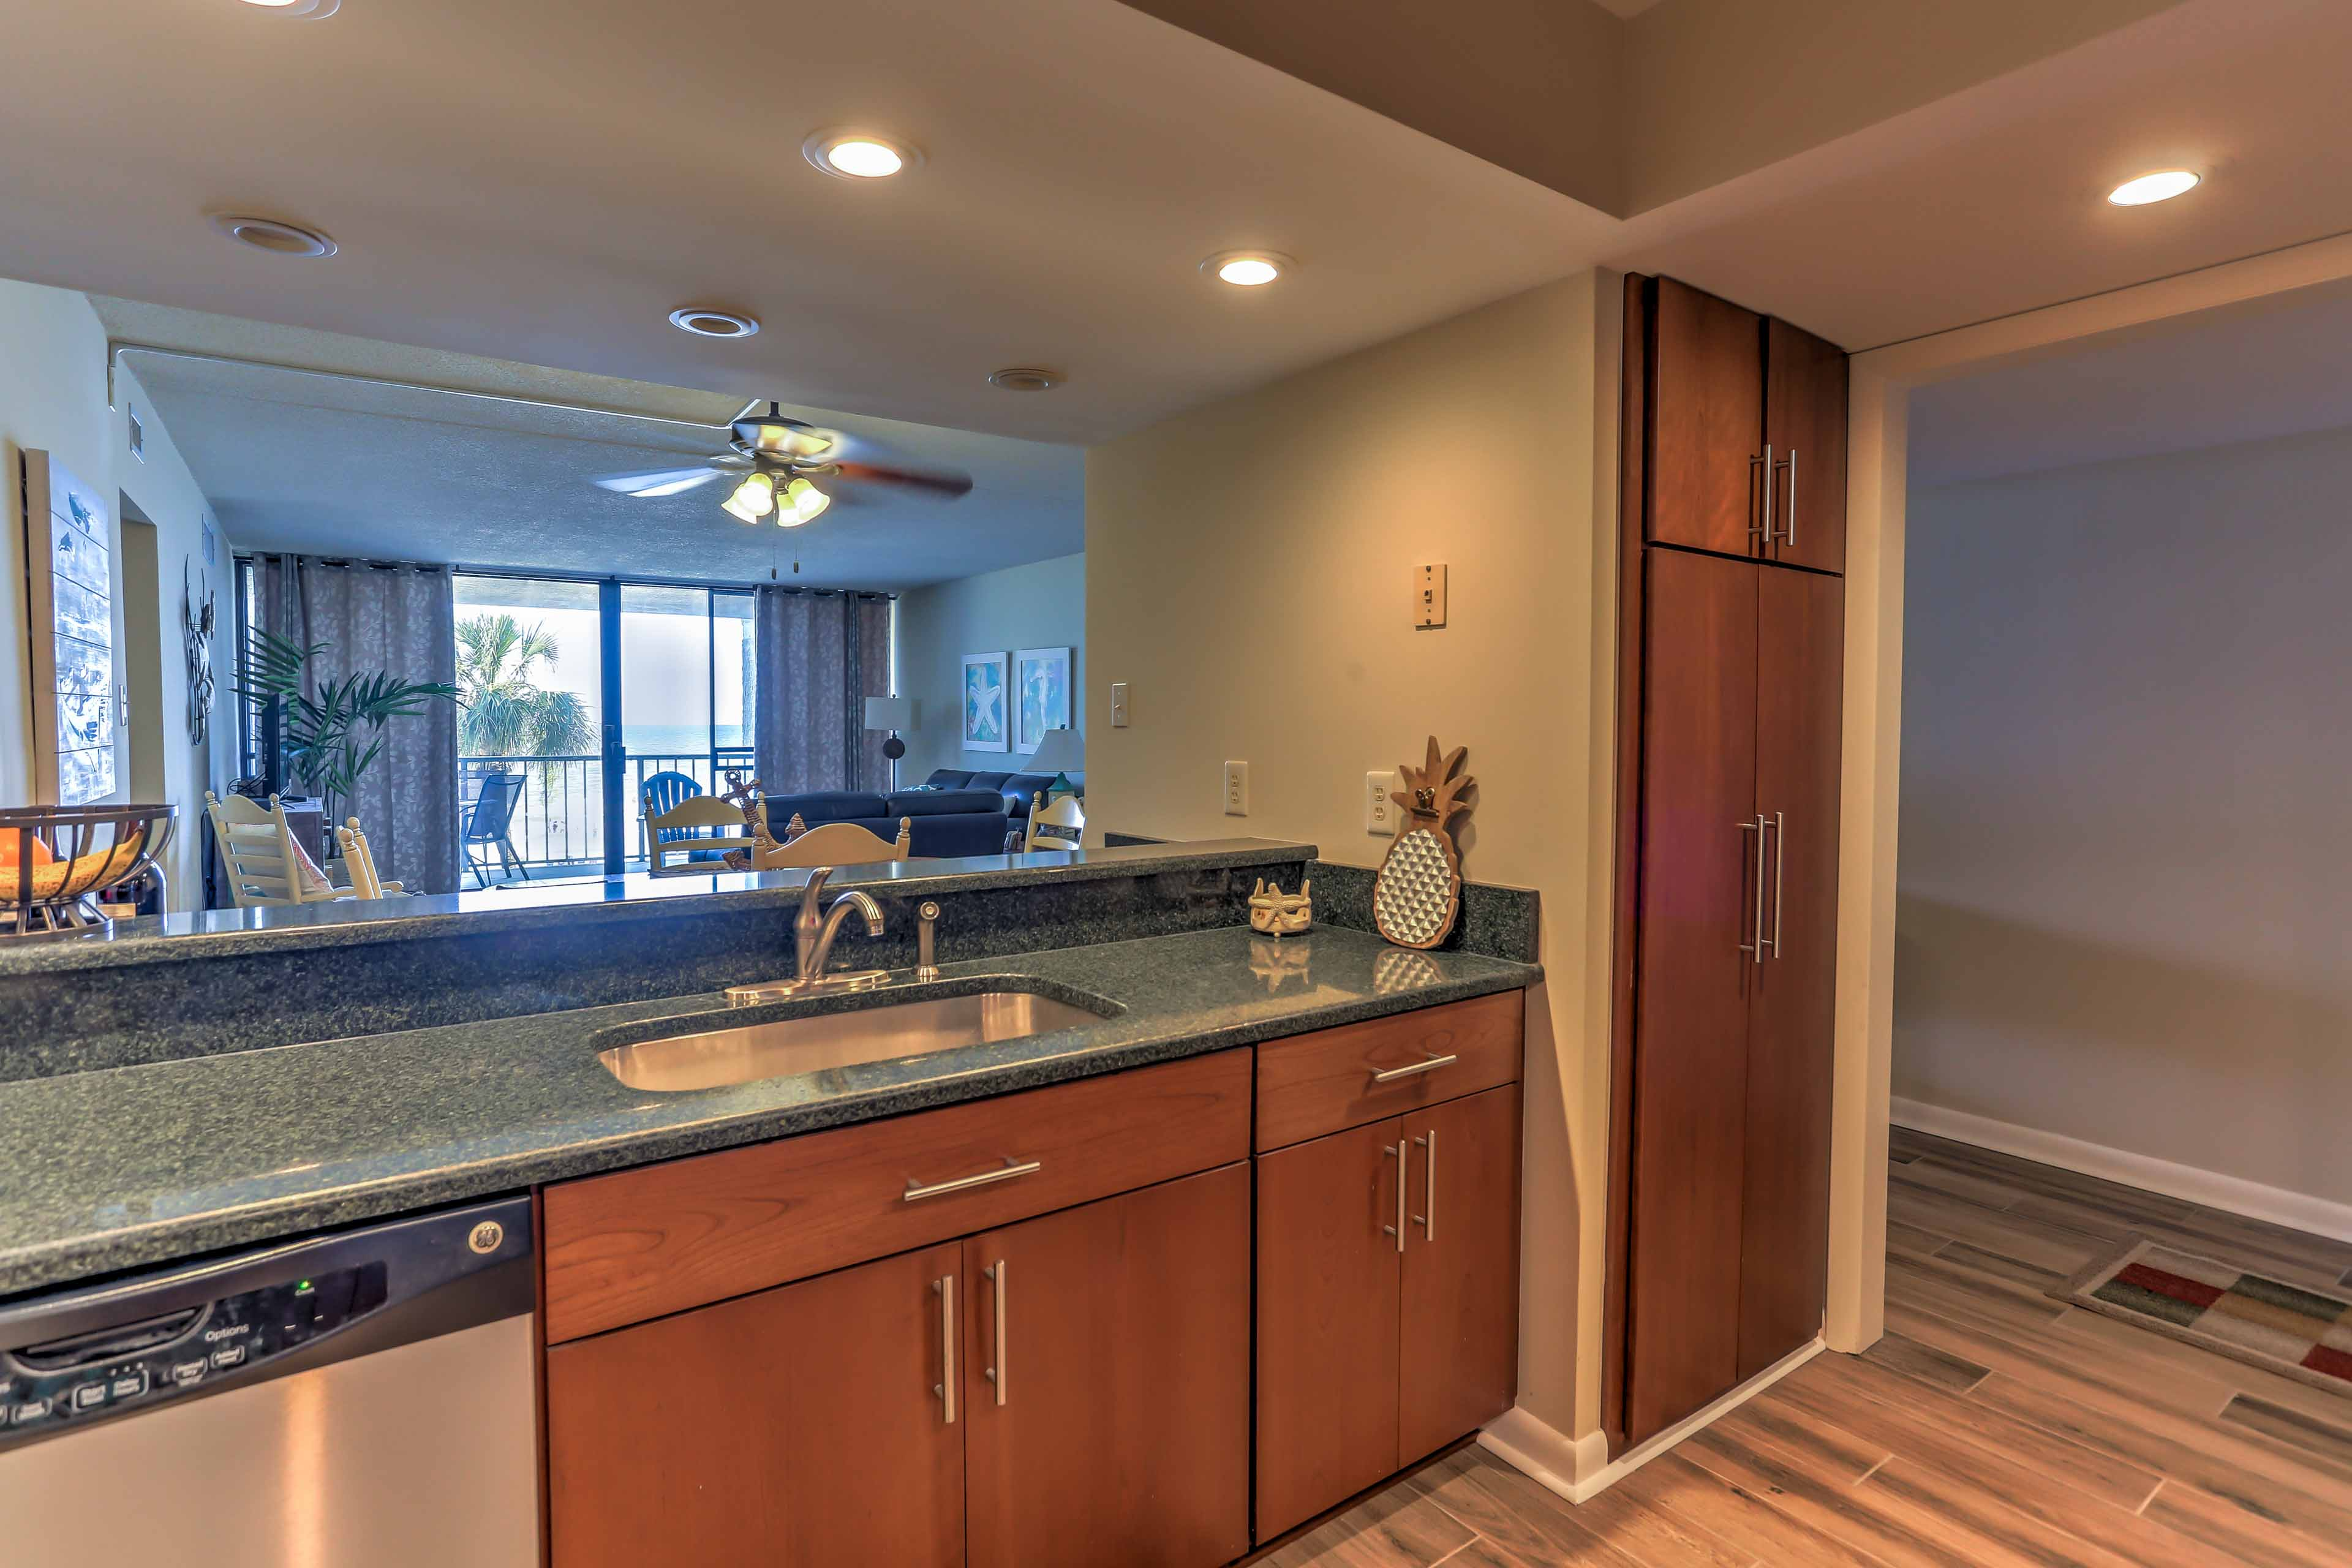 The kitchen is tastefully furnished with wood cabinets.